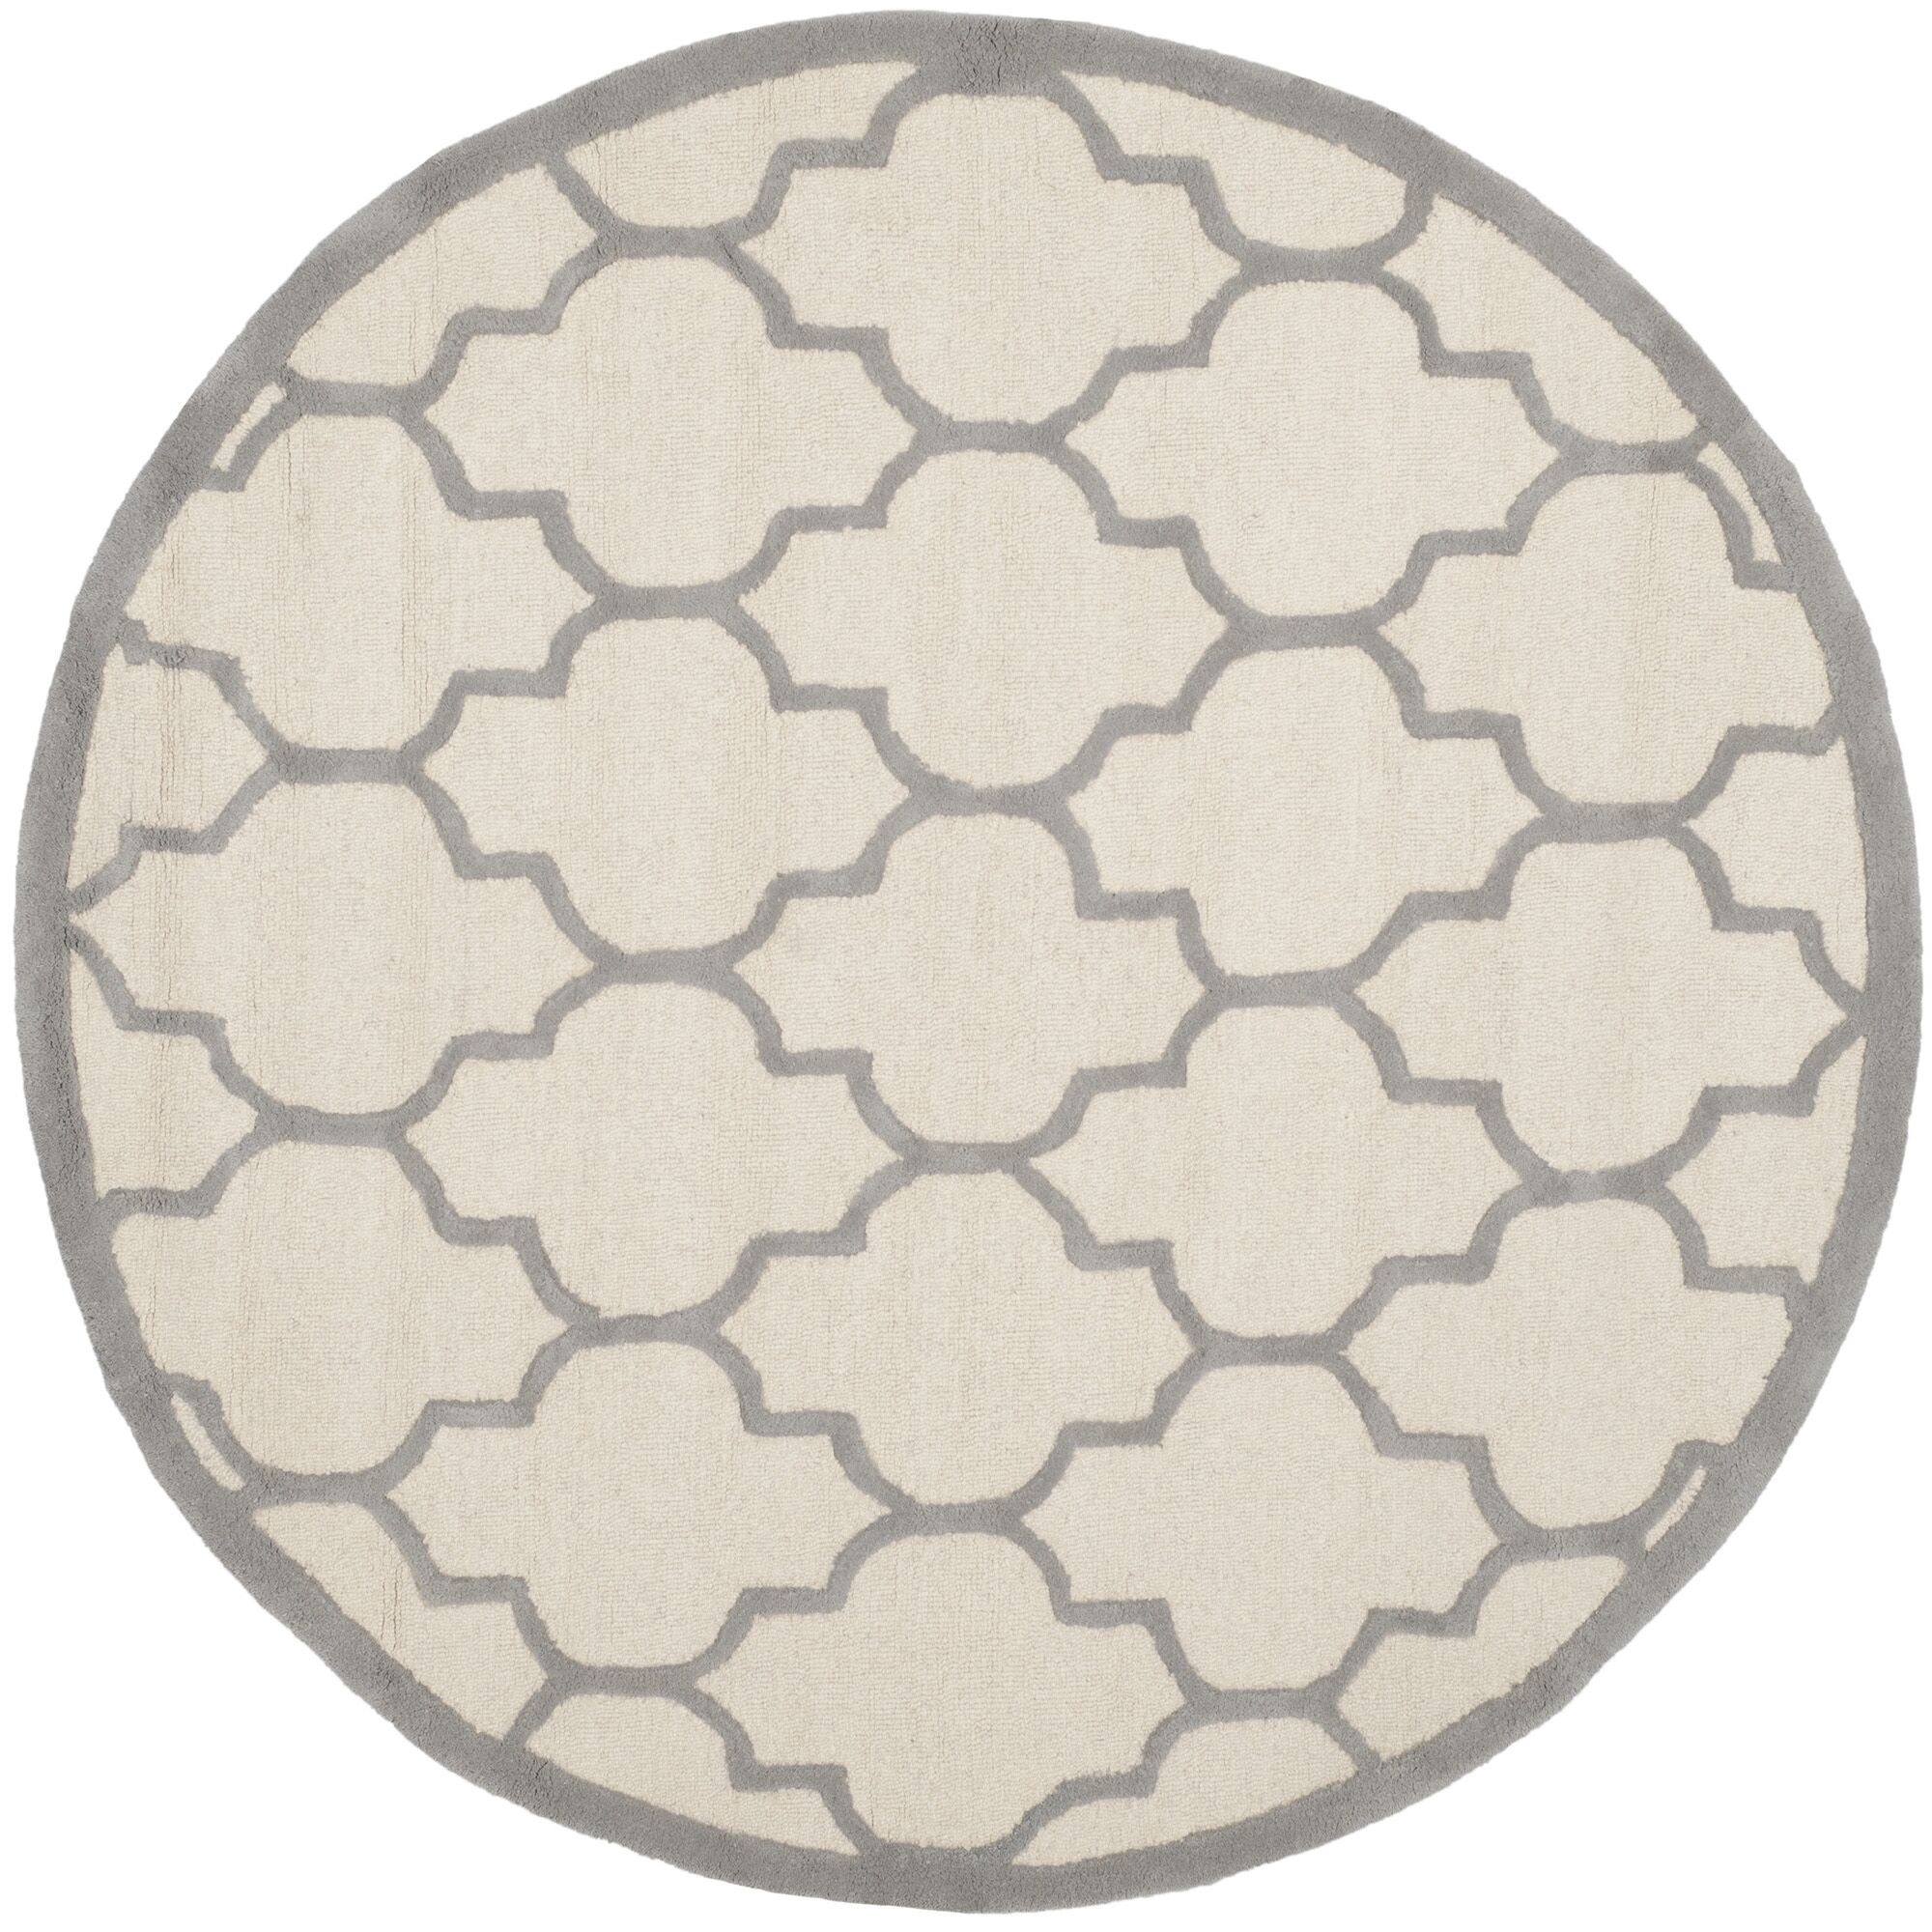 Charlenne Hand-Woven Wool Ivory/Silver Area Rug Rug Size: Round 6'